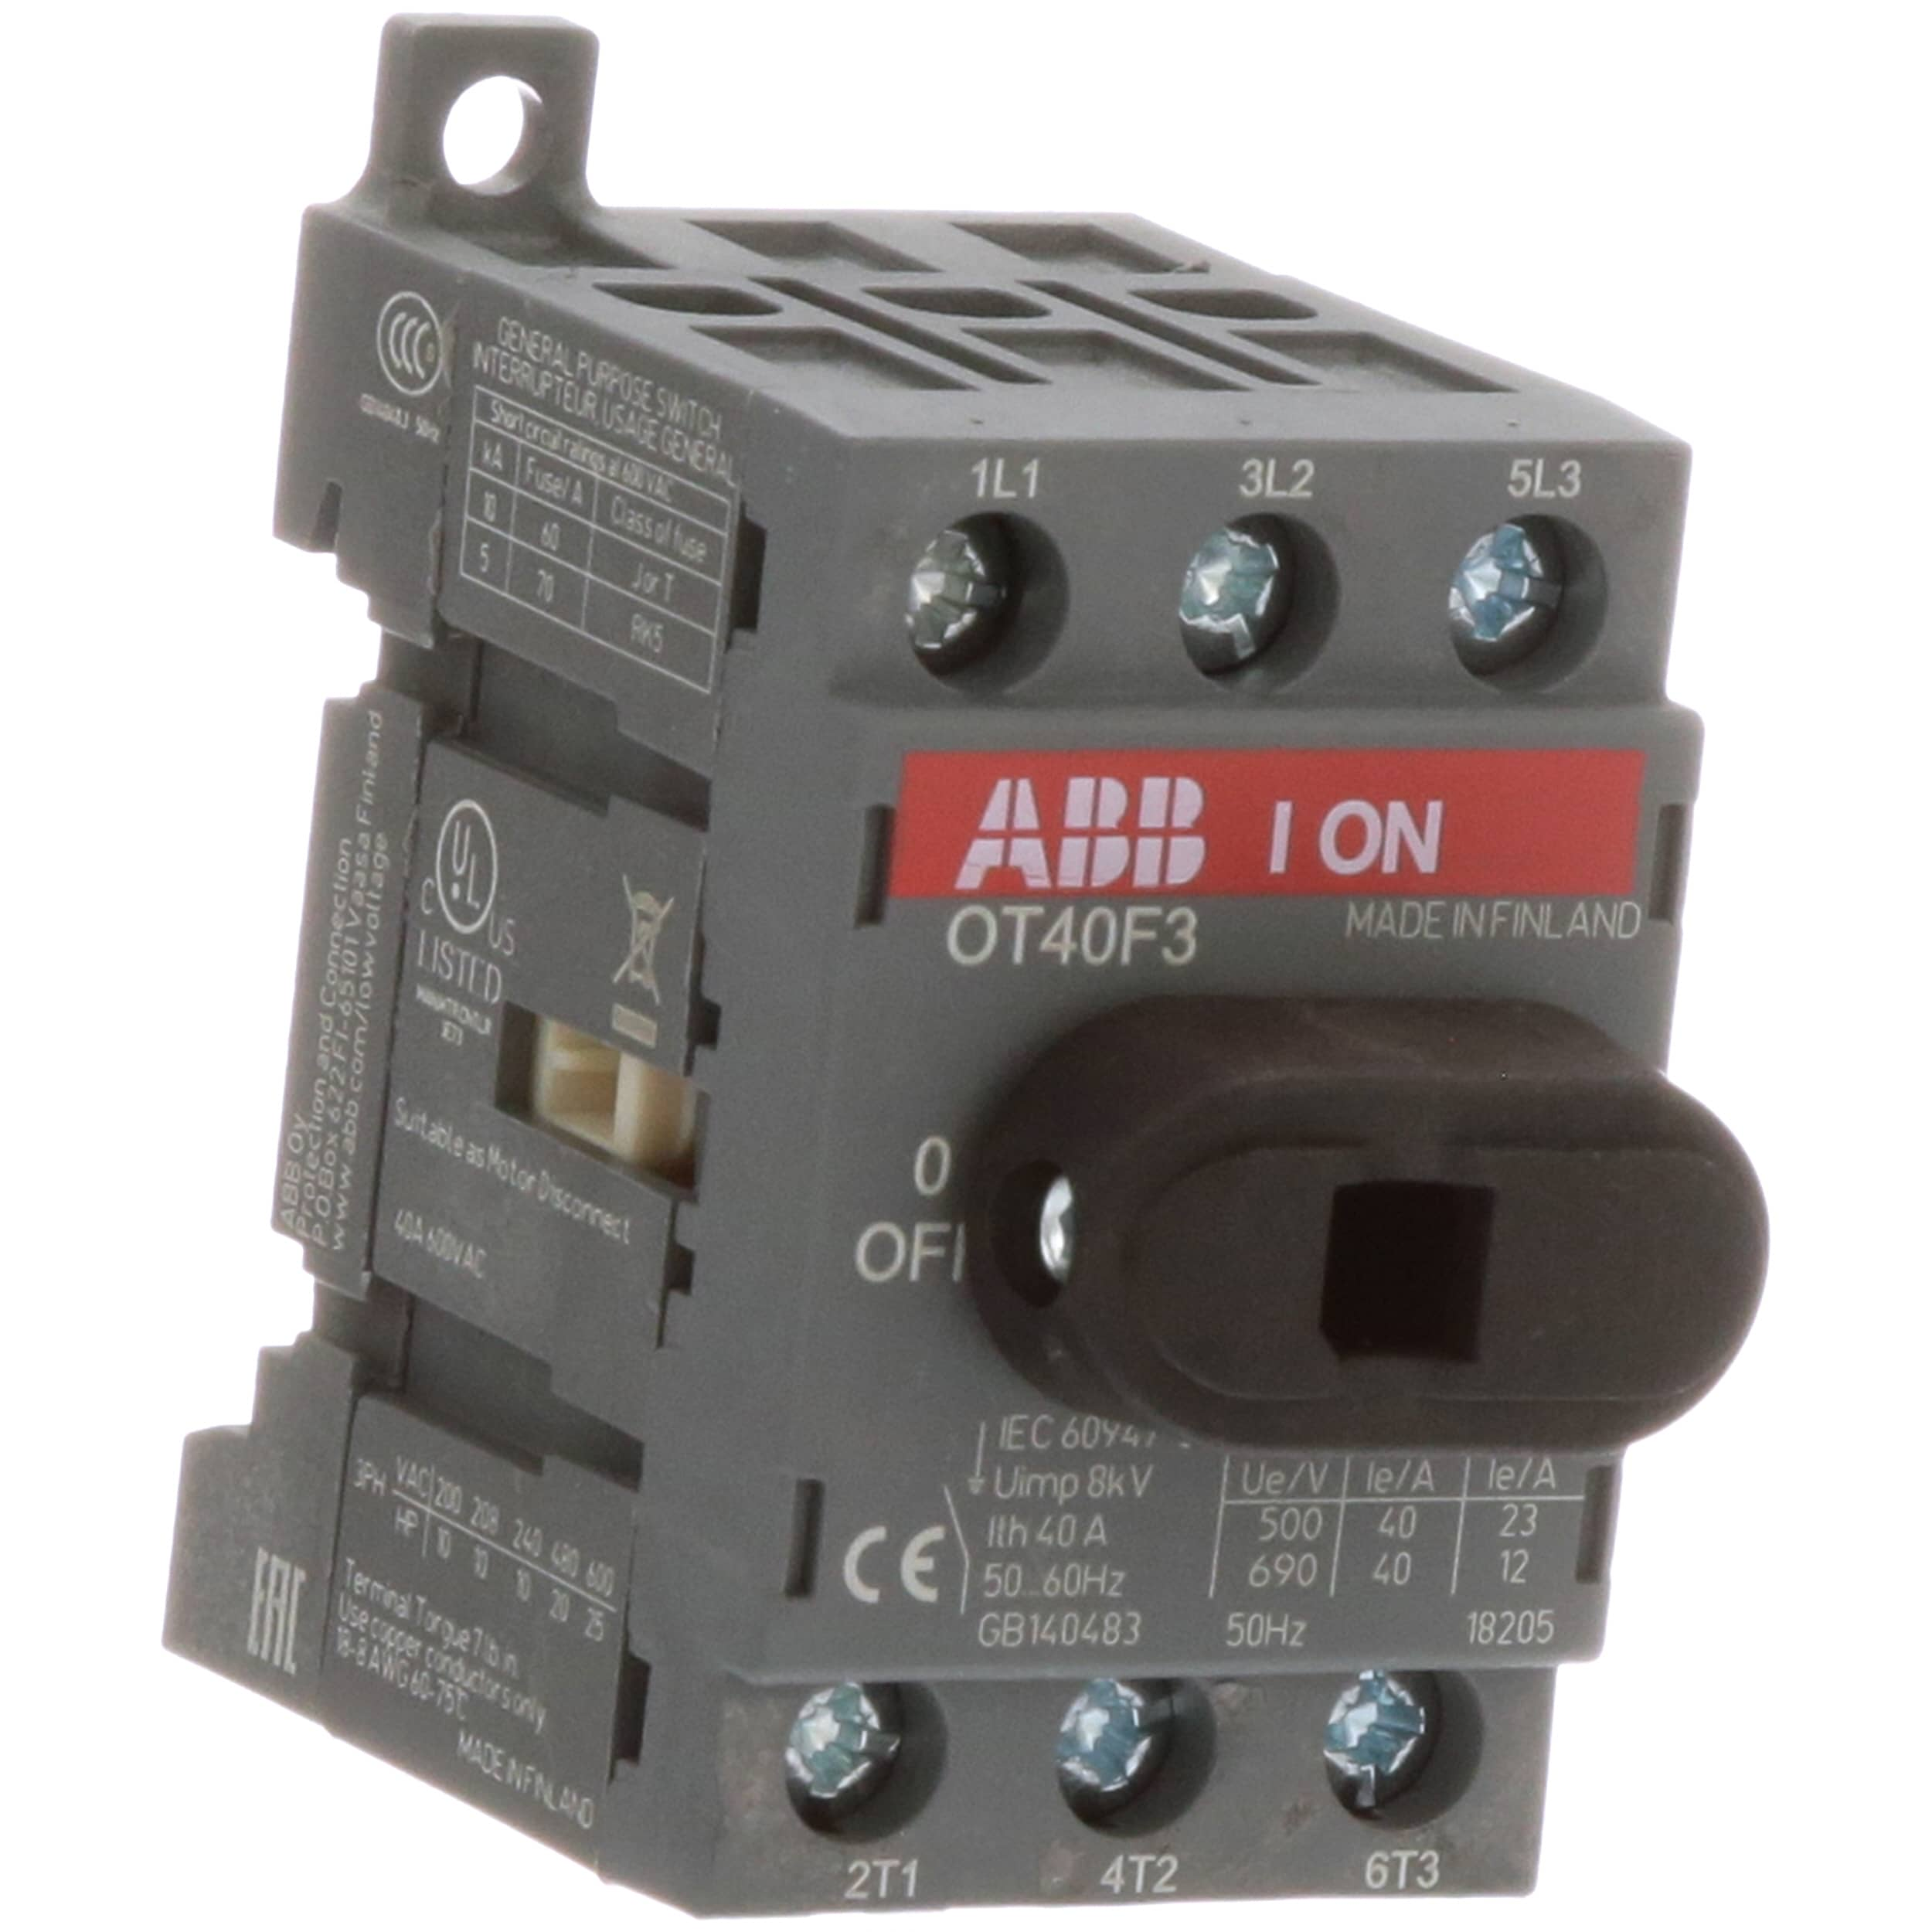 Abb Ot40f3 Disconnect Non Fusible Switch 3p 40a Ul508 New Snap Circuitsr Sound Scs185 Gtin Stock Now Allied Electronics Automation